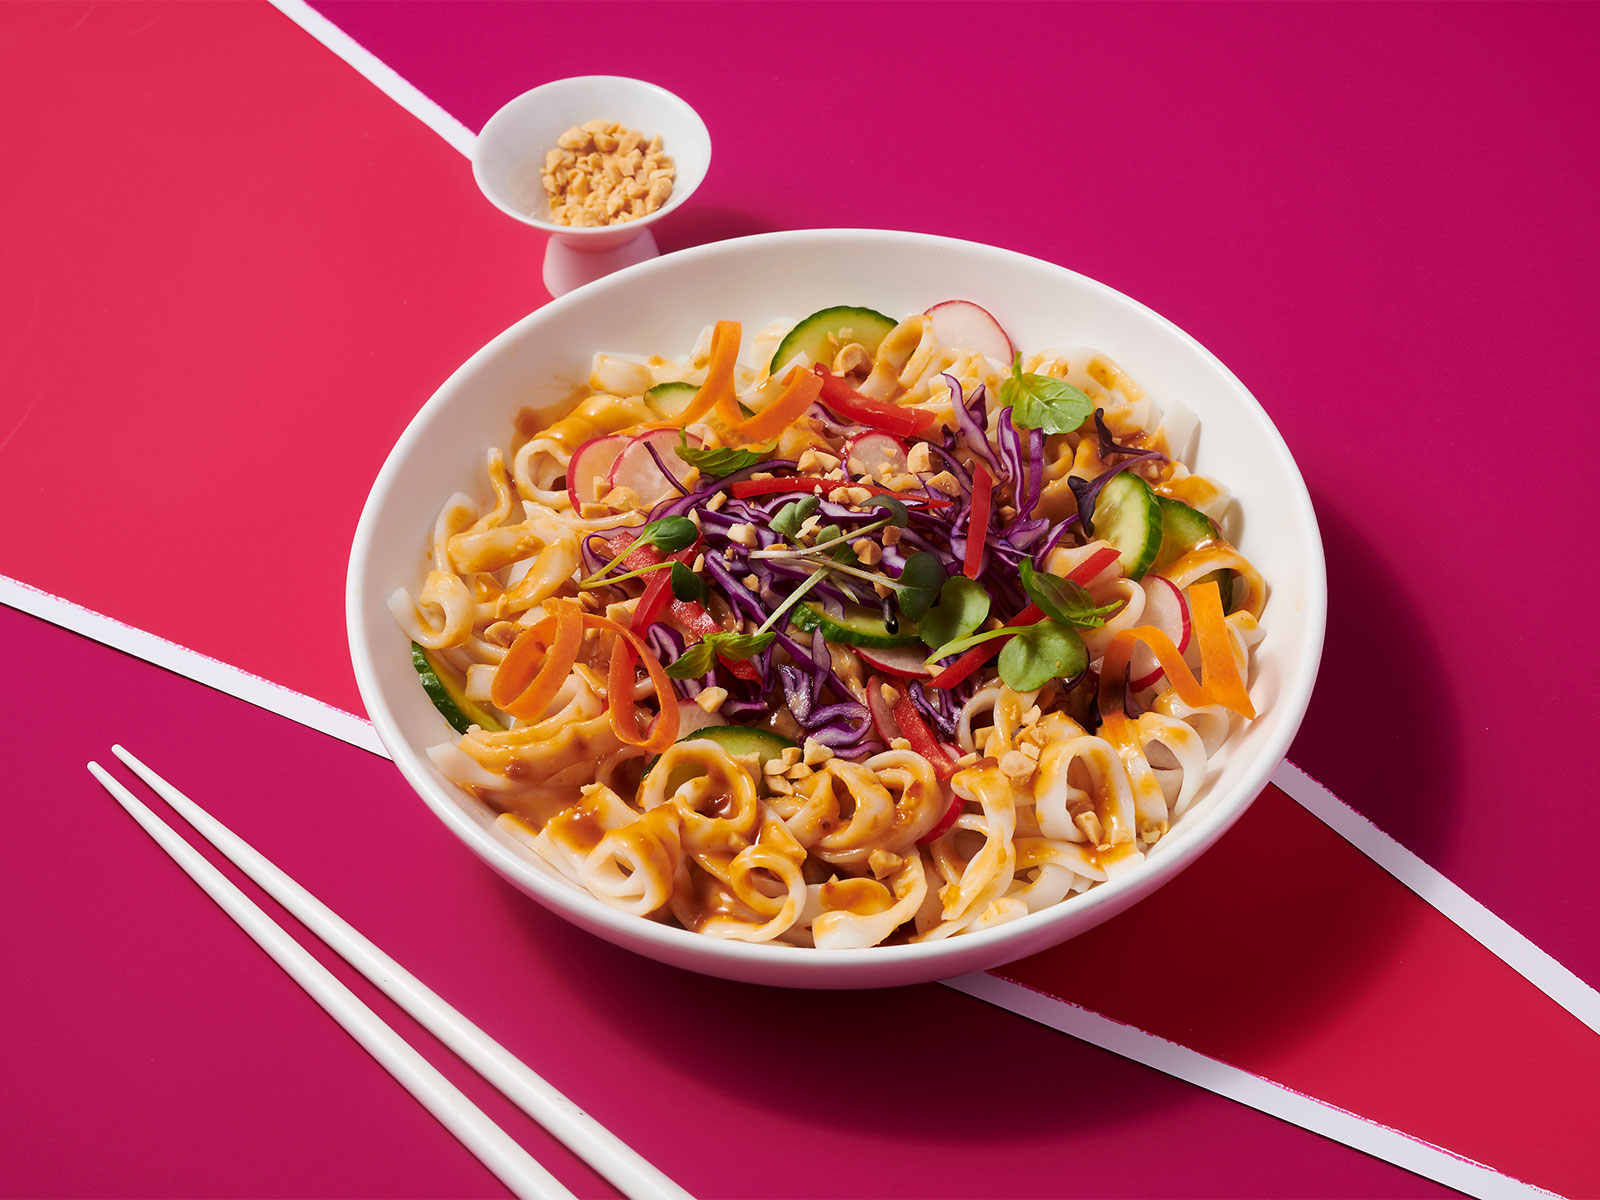 Spicy Peanut 10g Protein Noodles™ with Cabbage and Cucumbers